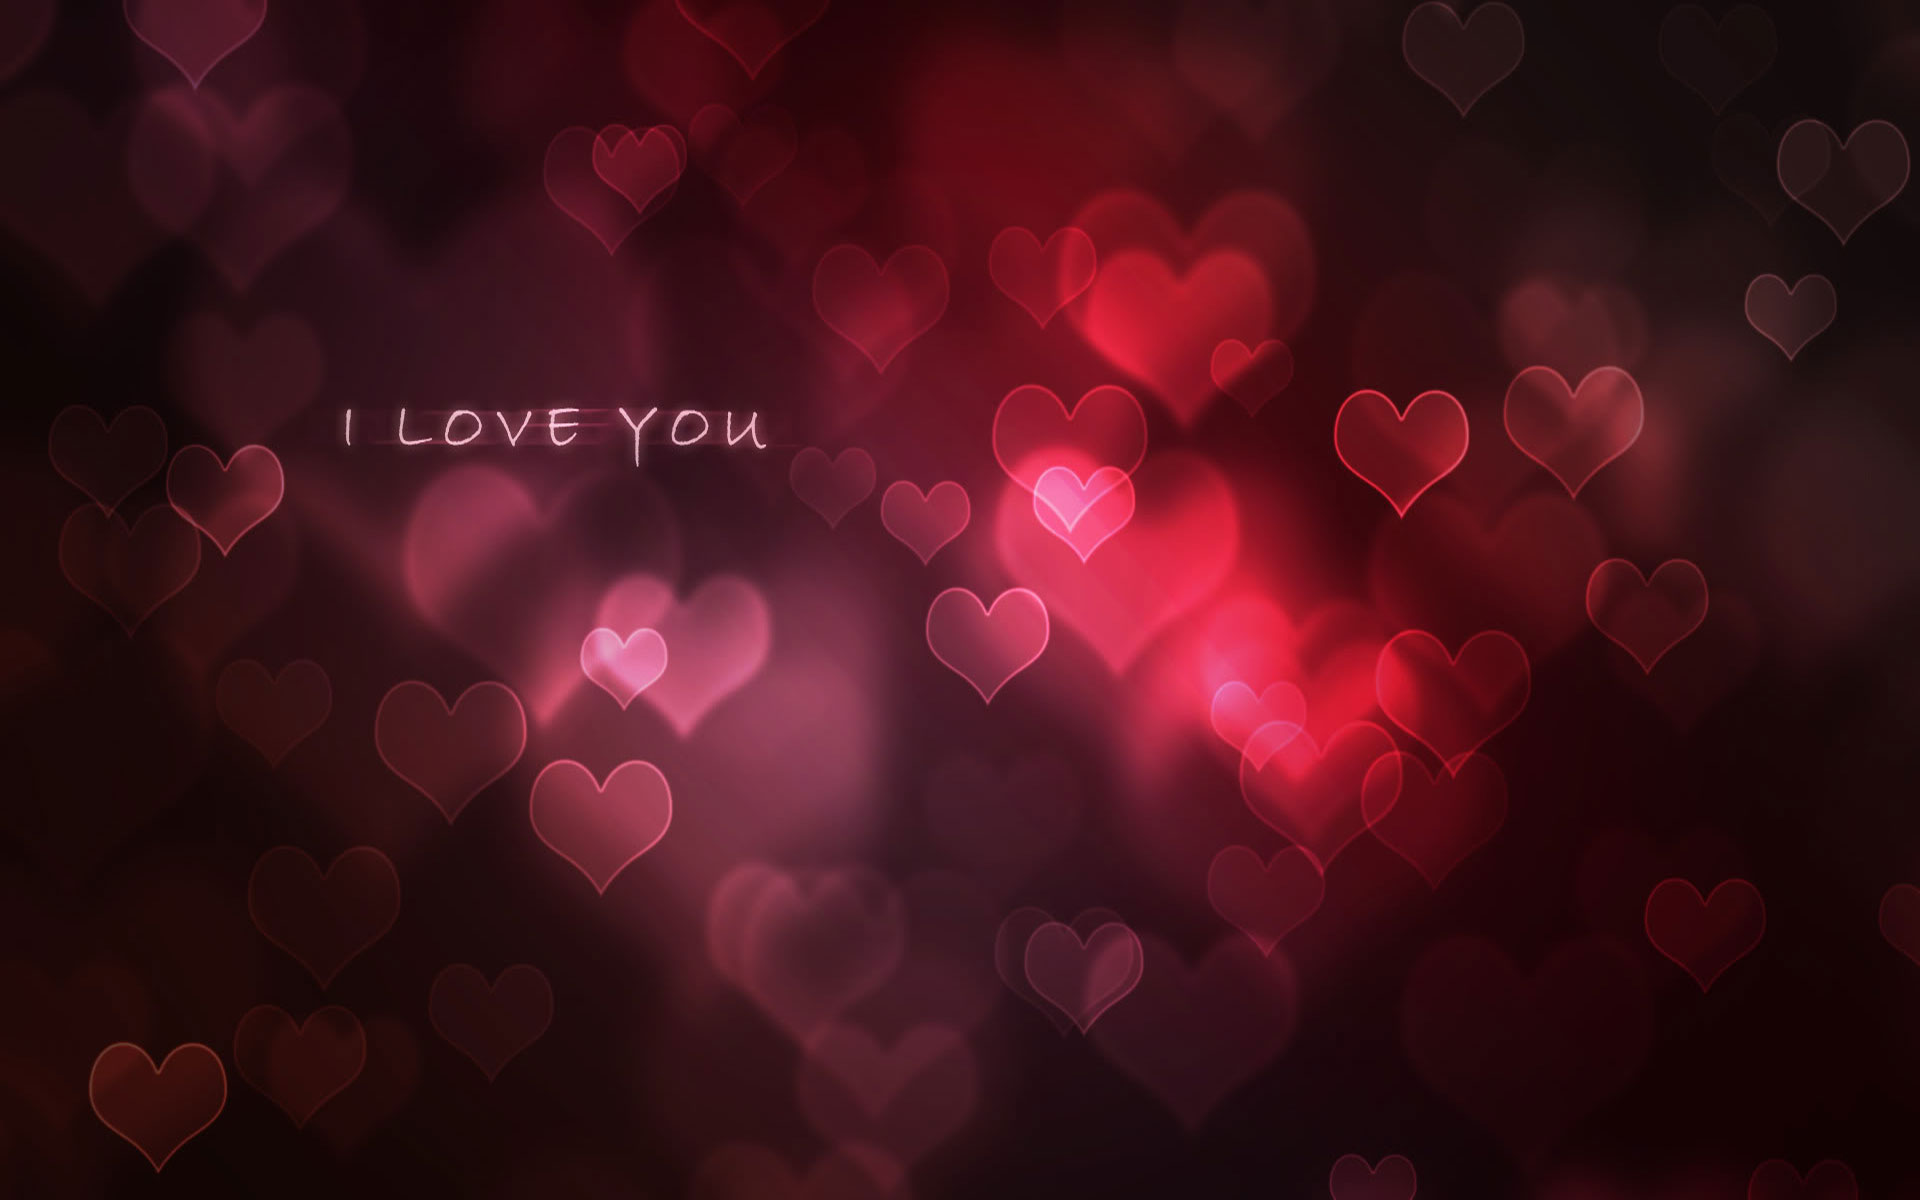 Love Wallpaper Deviantart : 25+ Free HD I Love You Wallpapers cute I Love You Images